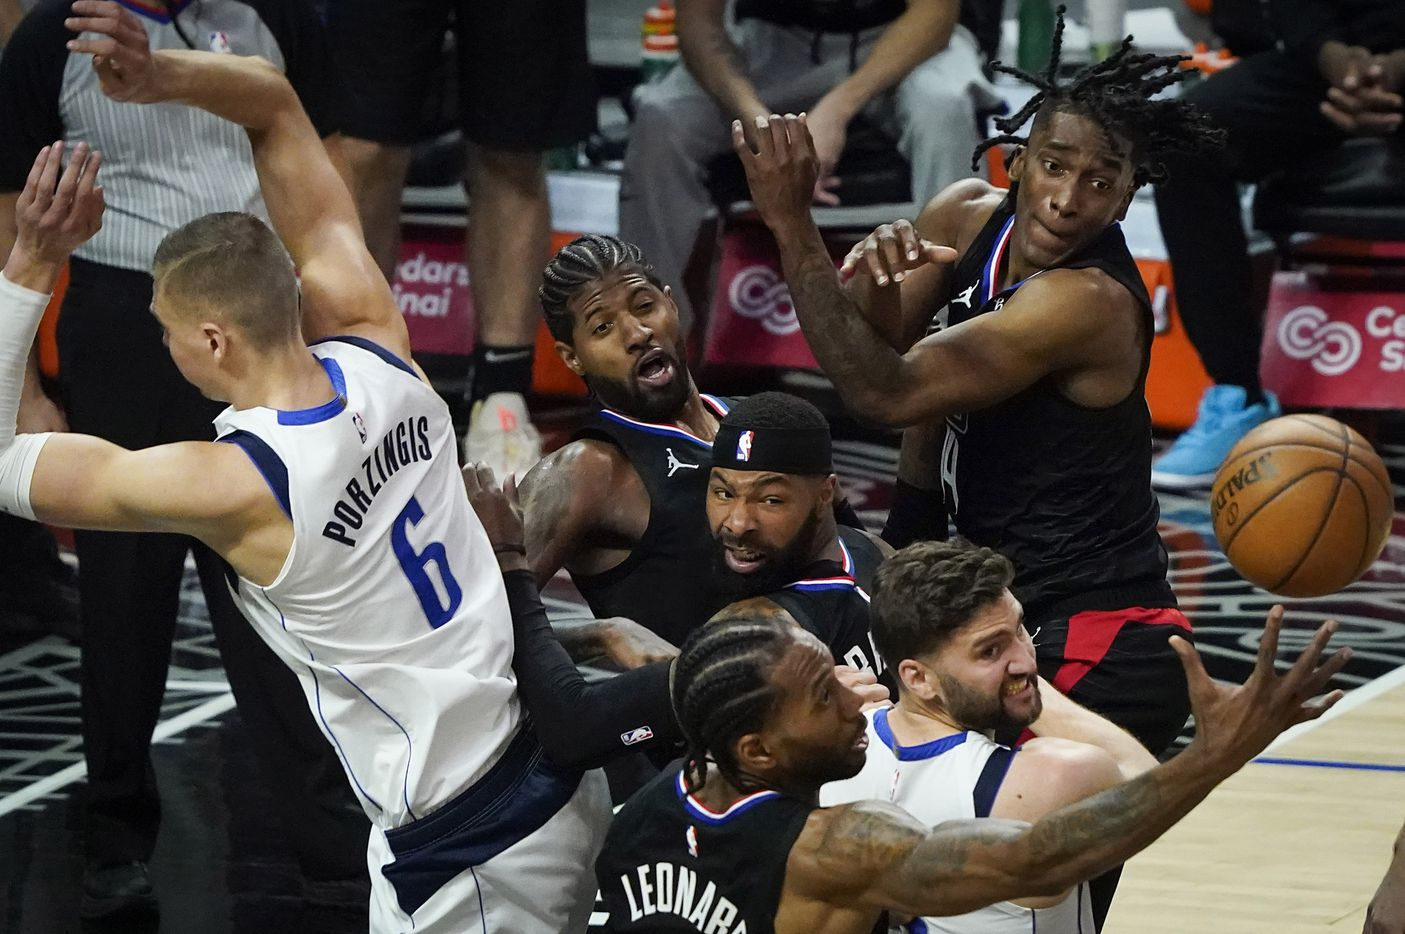 LA Clippers forward Kawhi Leonard (2) grags a rebound with Dallas Mavericks center Kristaps Porzingis (6), forward Maxi Kleber (bottom) and , from left Clippers forward Kawhi Leonard (2), forward Marcus Morris Sr. (8) and guard Terance Mann (14) during the second half of an NBA playoff basketball game at Staples Center on Tuesday, May 25, 2021, in Los Angeles. The Mavericks won the game 127-121.